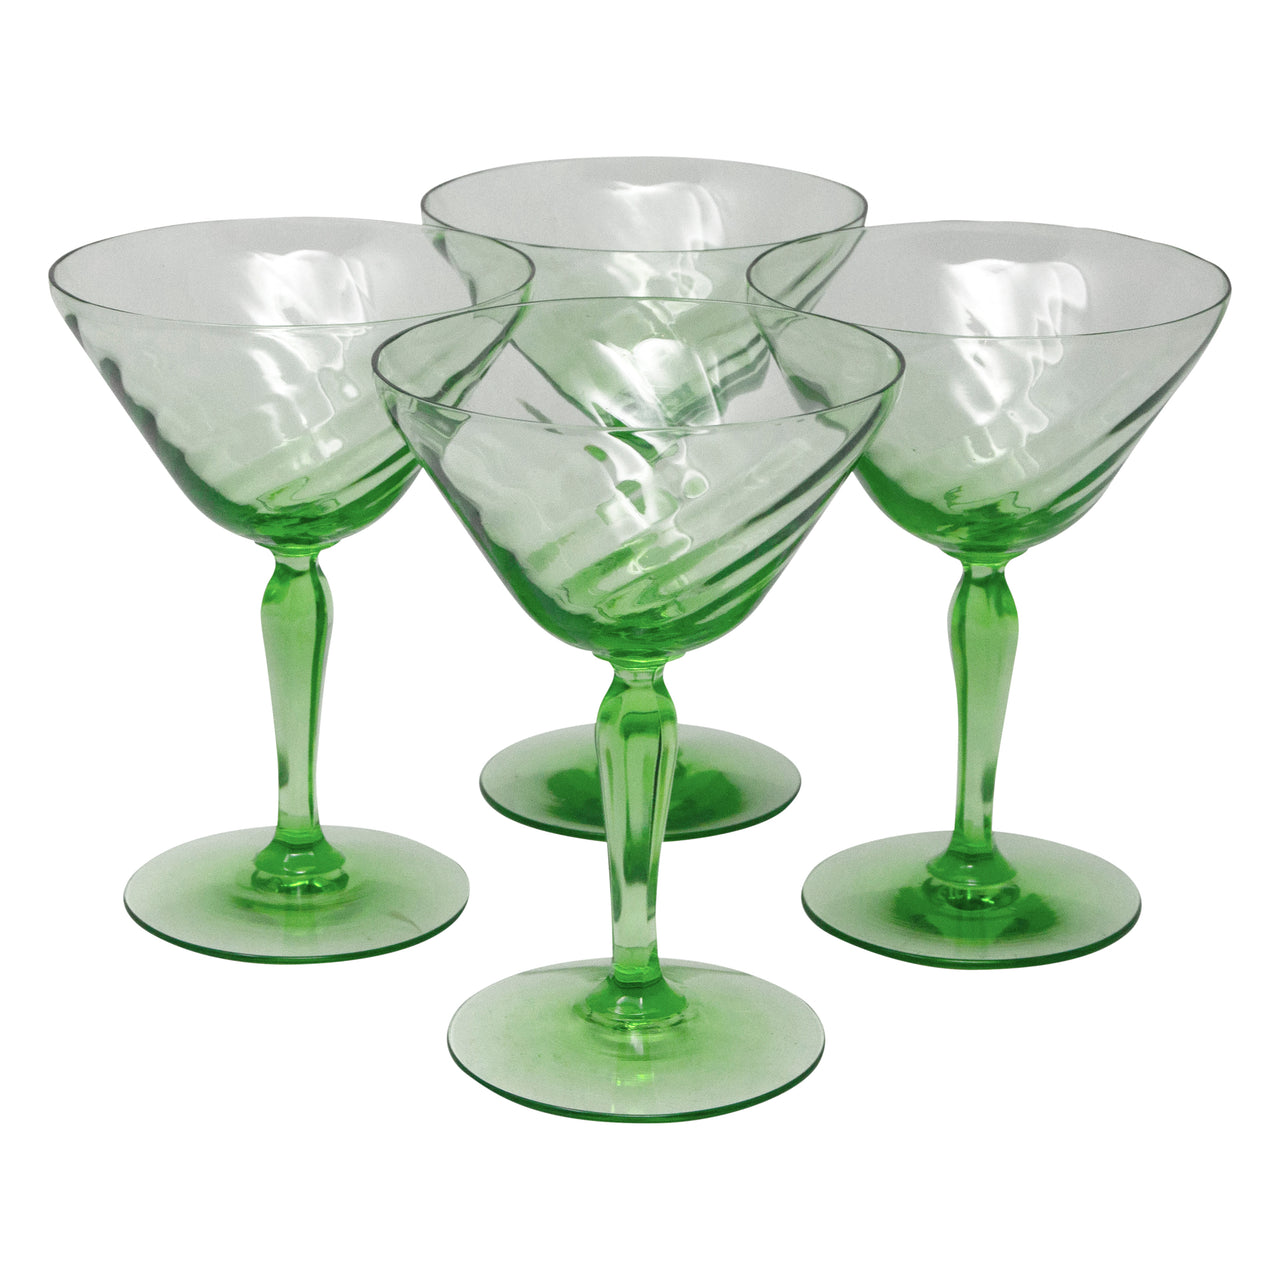 Vintage Green Vaseline Swirl Cocktail Glasses | The Hour Shop